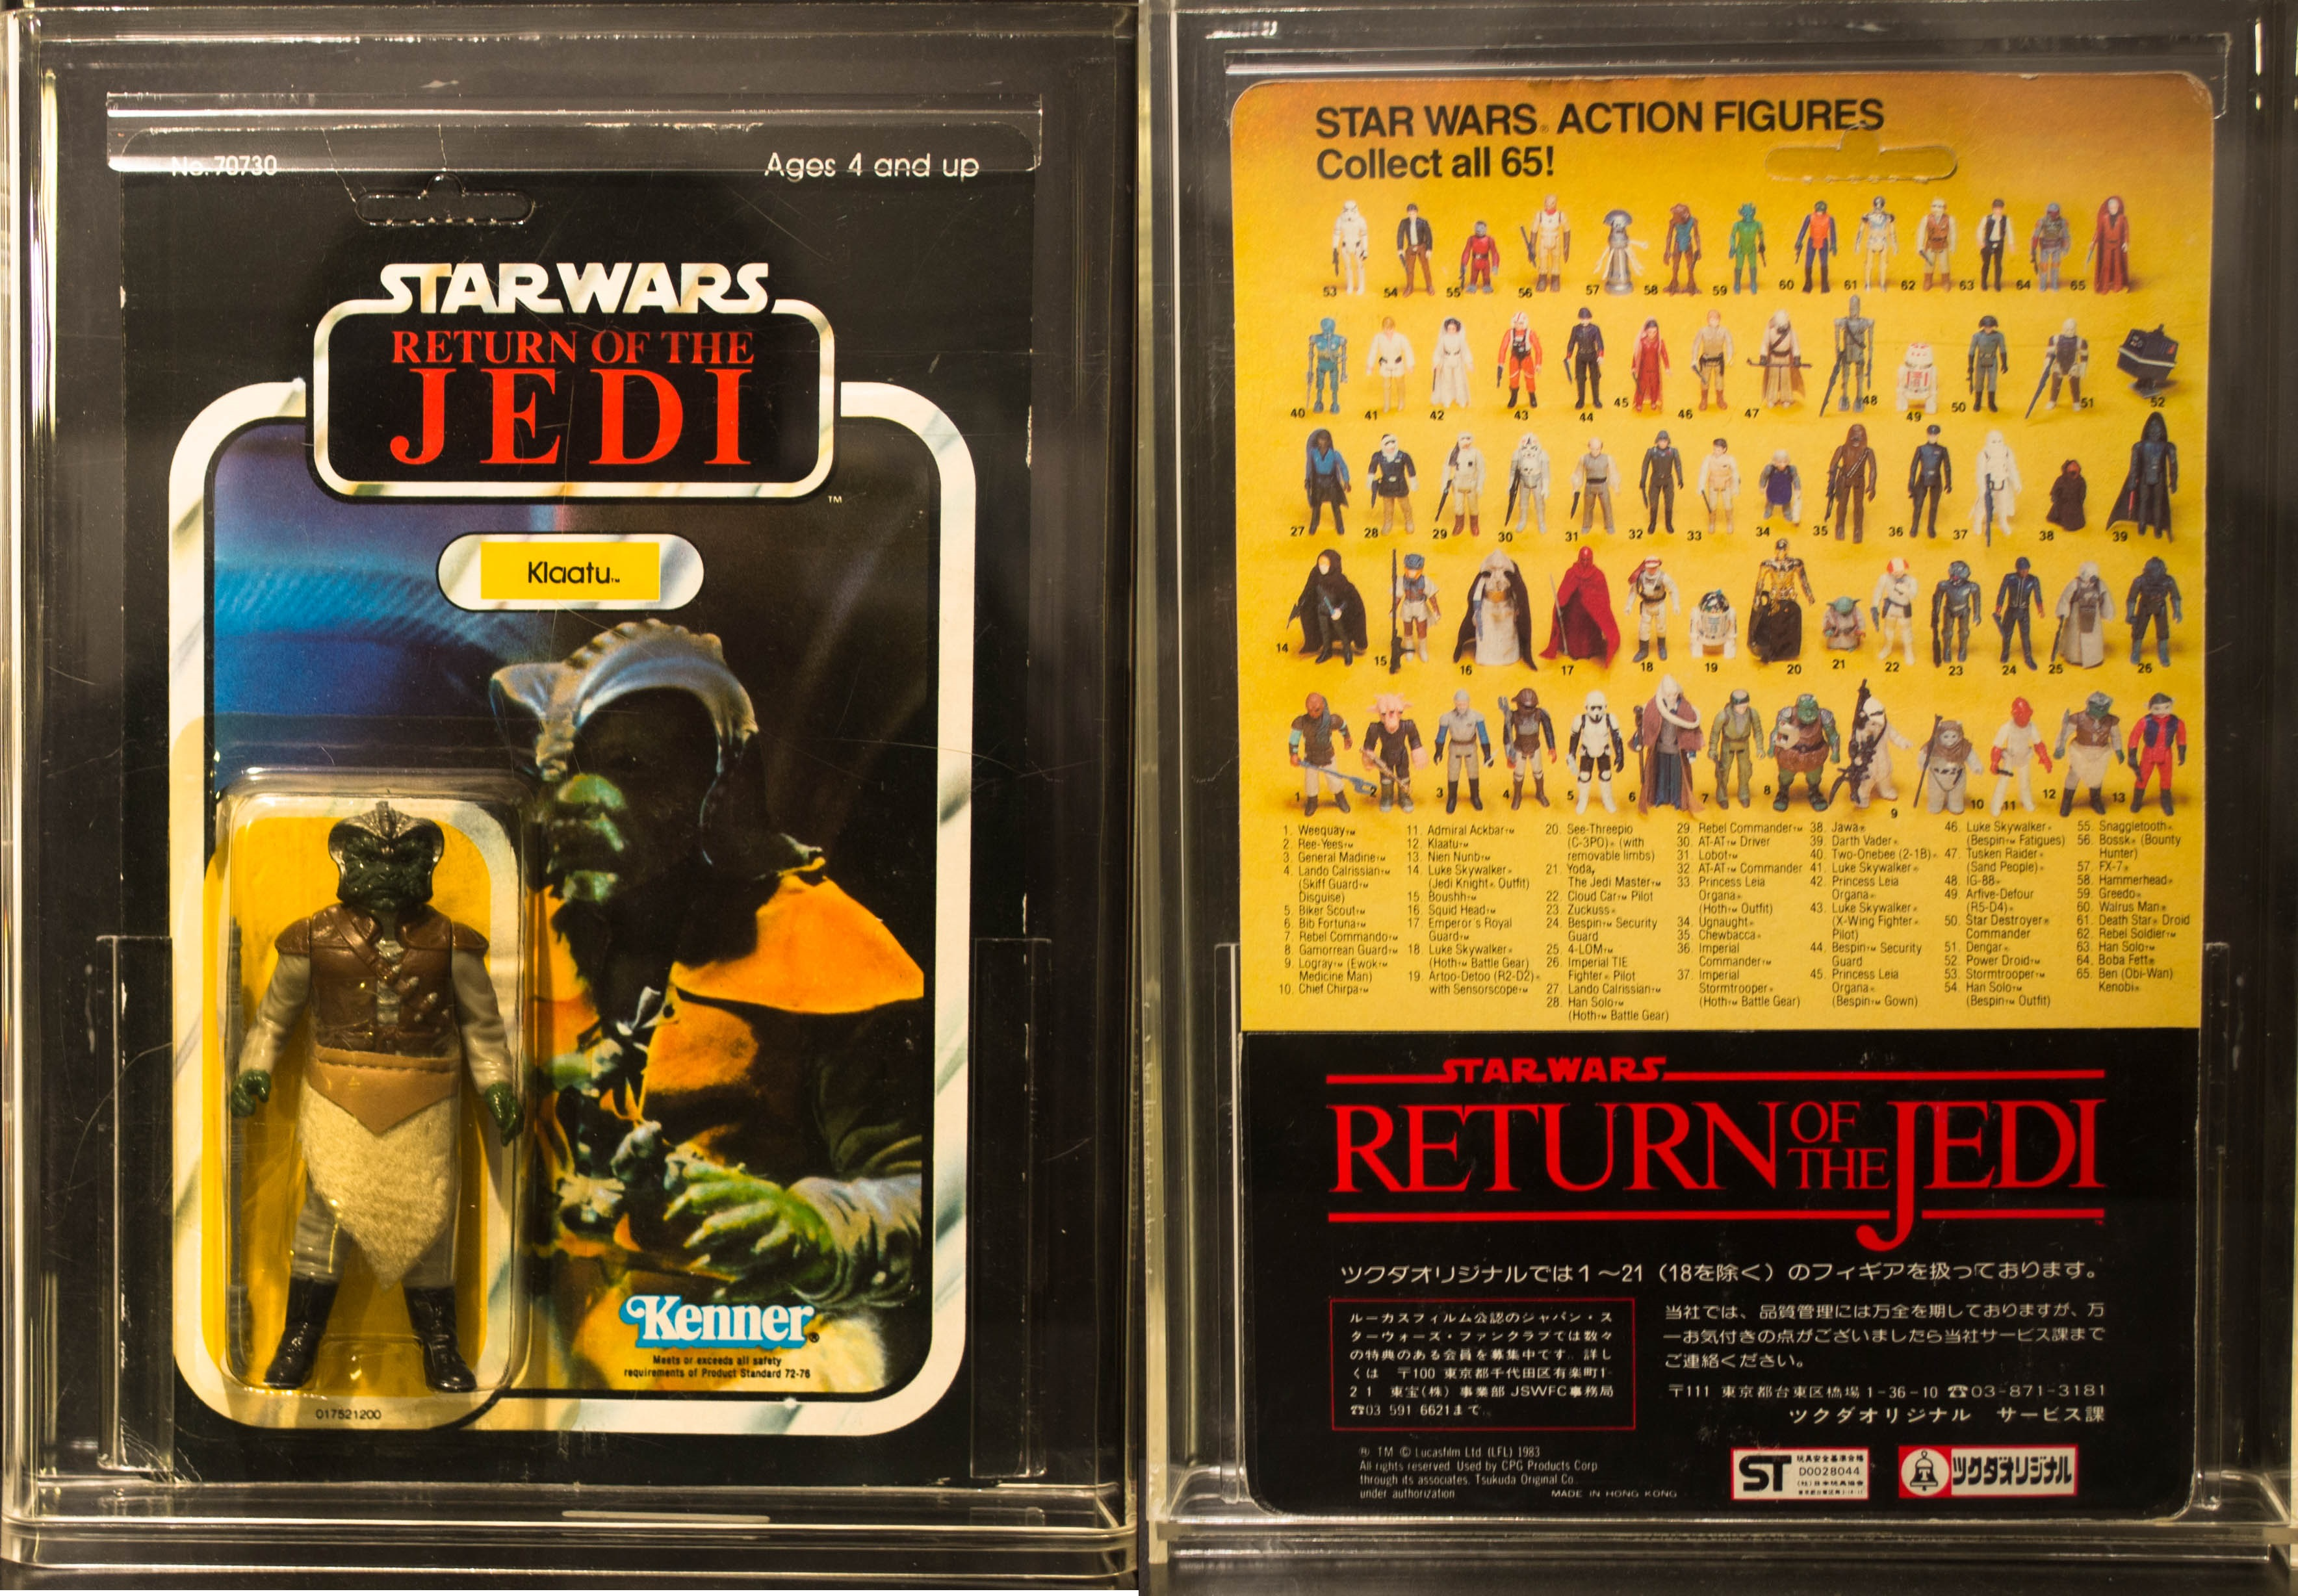 THE JAPANESE VINTAGE STAR WARS COLLECTING THREAD  DSC_0935